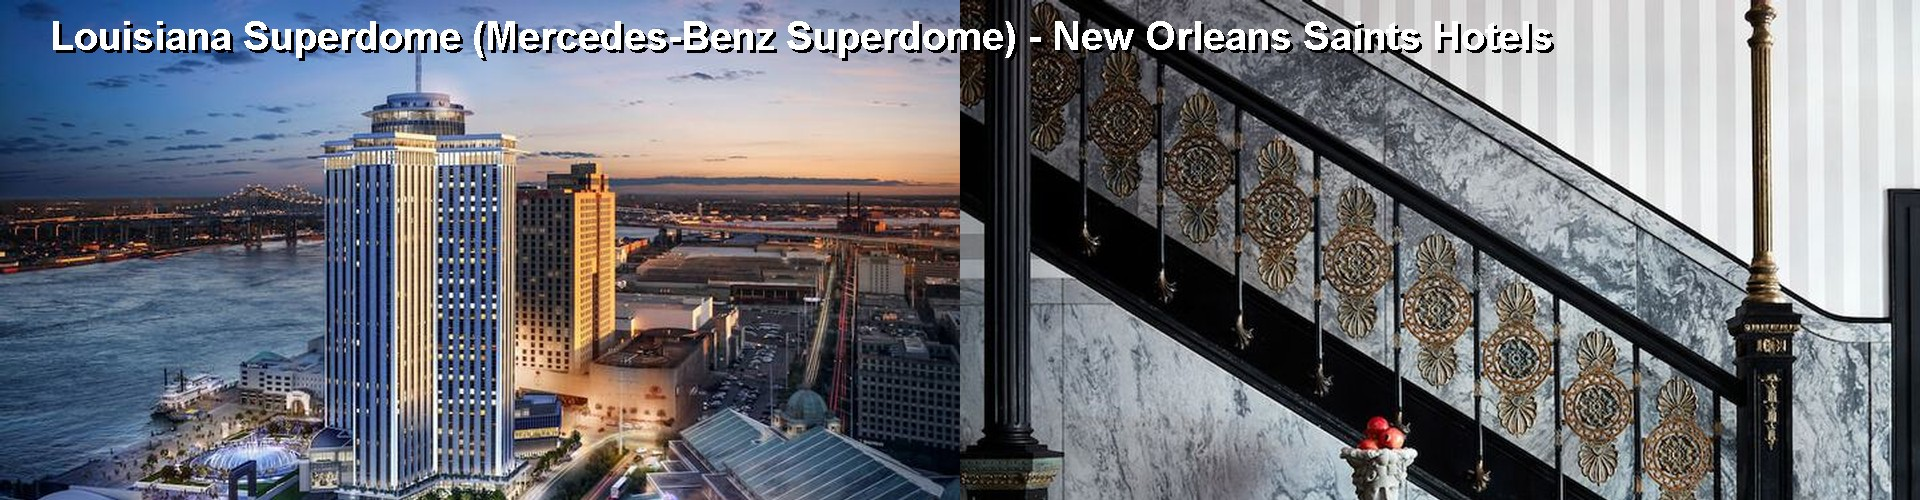 hotels near louisiana superdome mercedes benz superdome